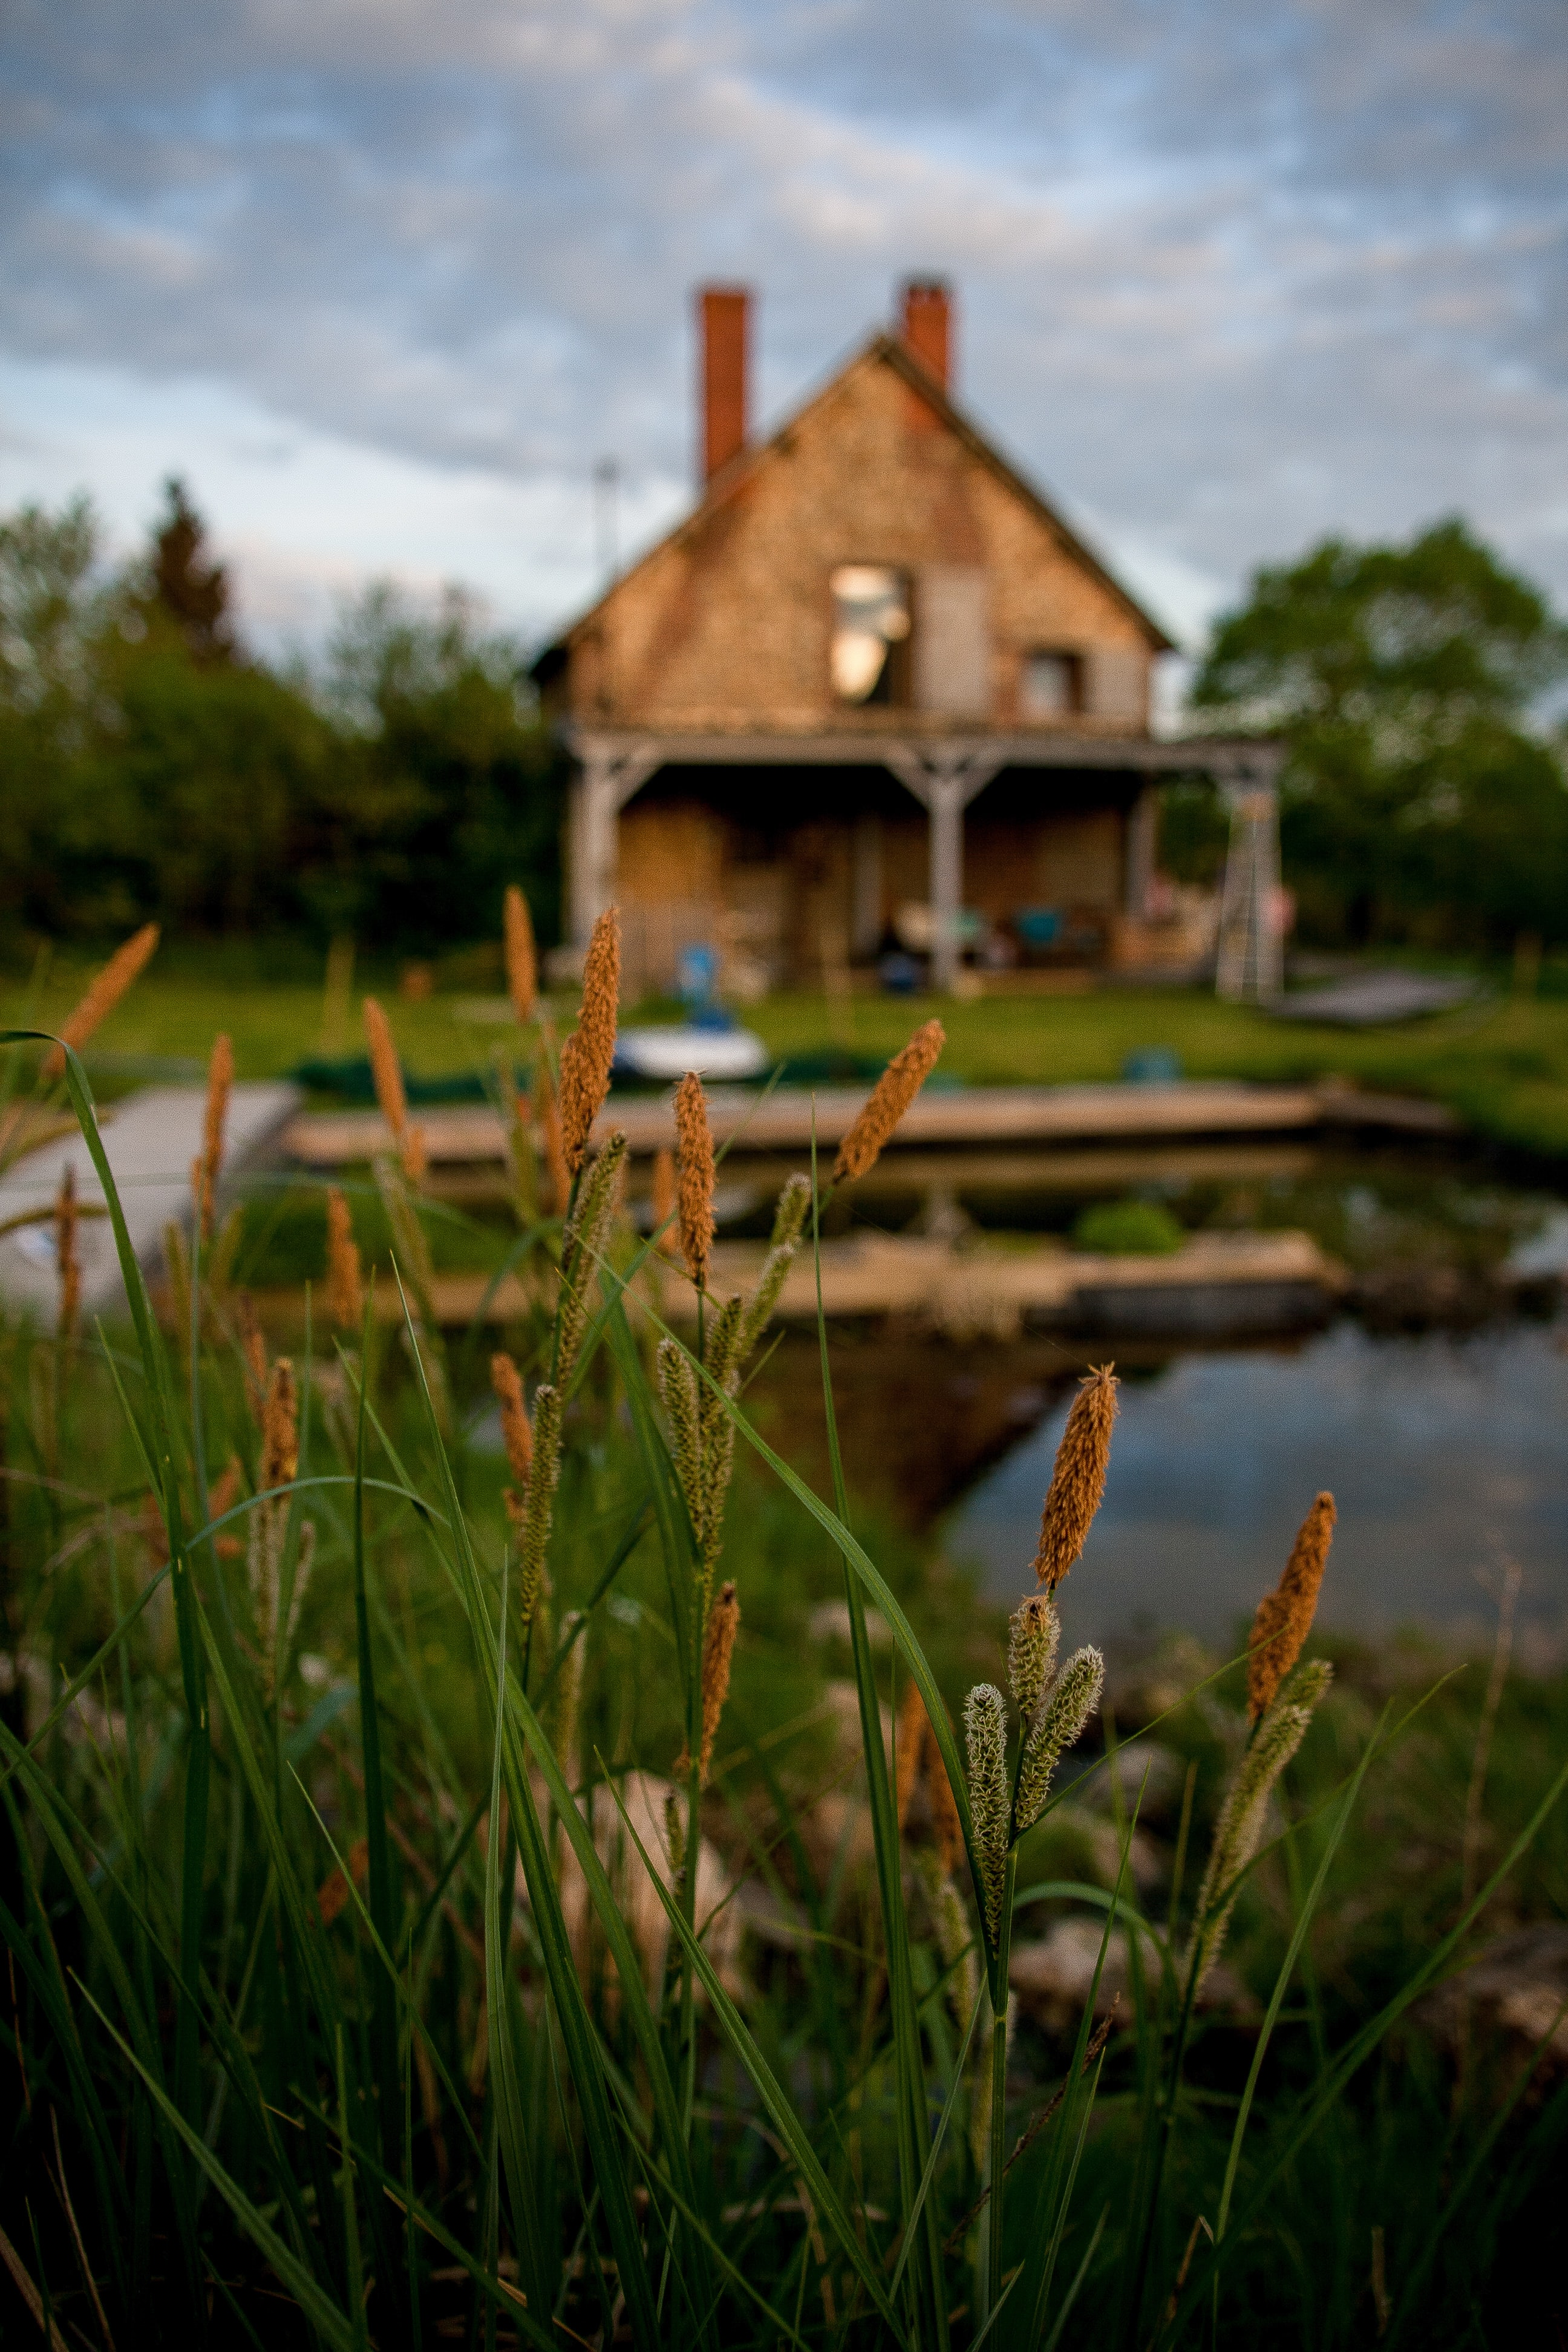 selective focus photography of yellow flowers near body of water on brown wooden house at daytime